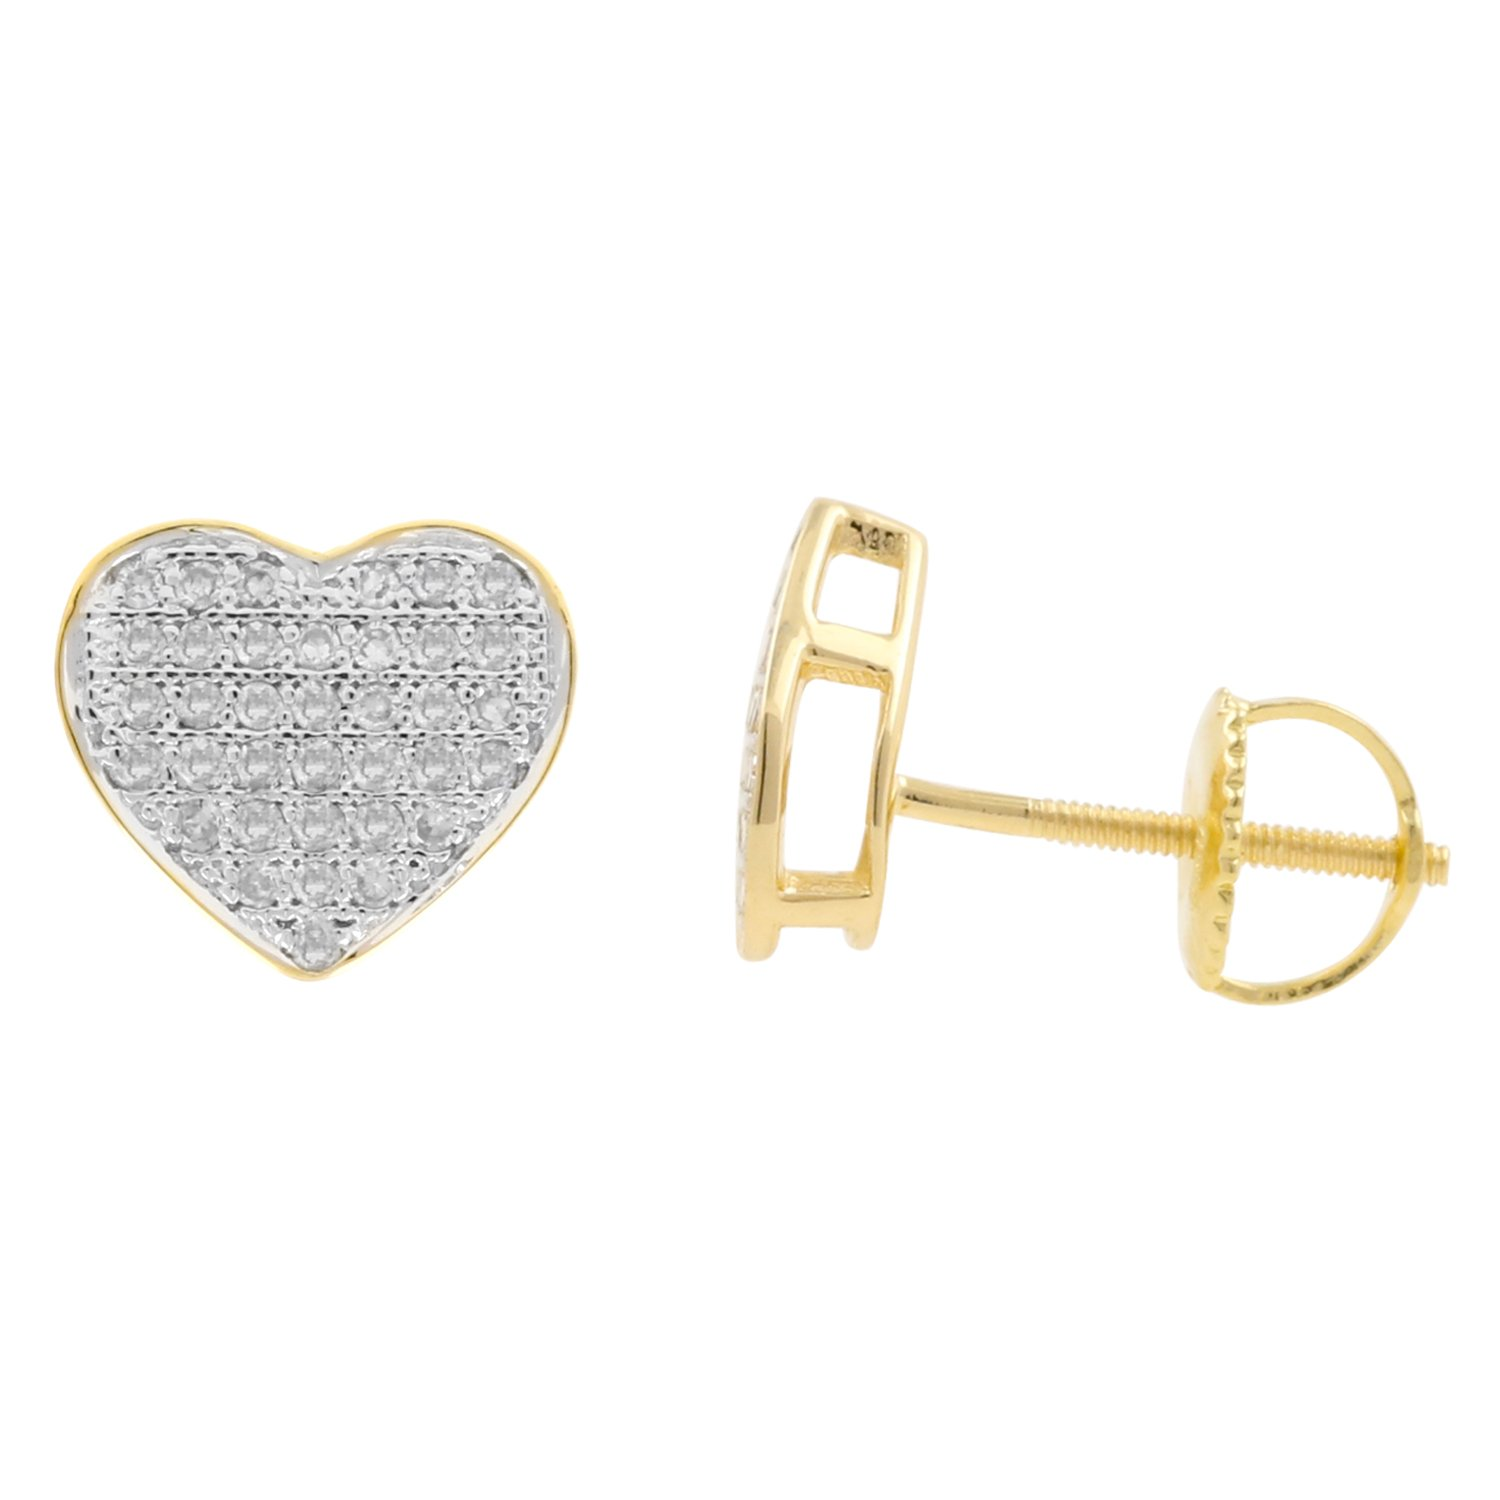 0.25ct Diamond Heart Shape Mens Iced Stud Earrings in 10kt Yellow Gold-1//4 CTTW H-I, I1-I2